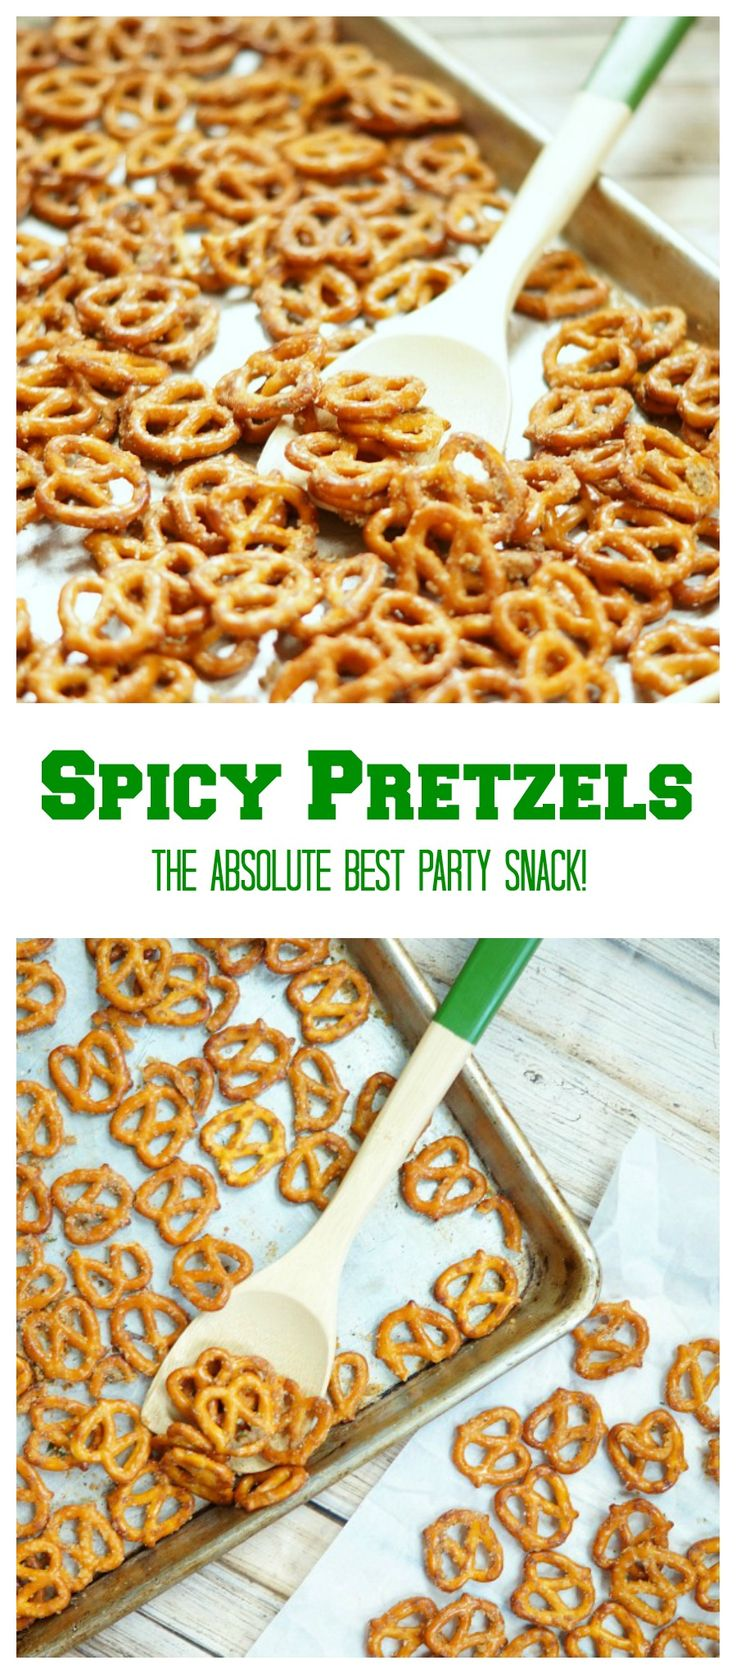 Spicy Party Pretzels, A mixture of ranch, garlic powder, and cayenne powder make the most delicious party snack!